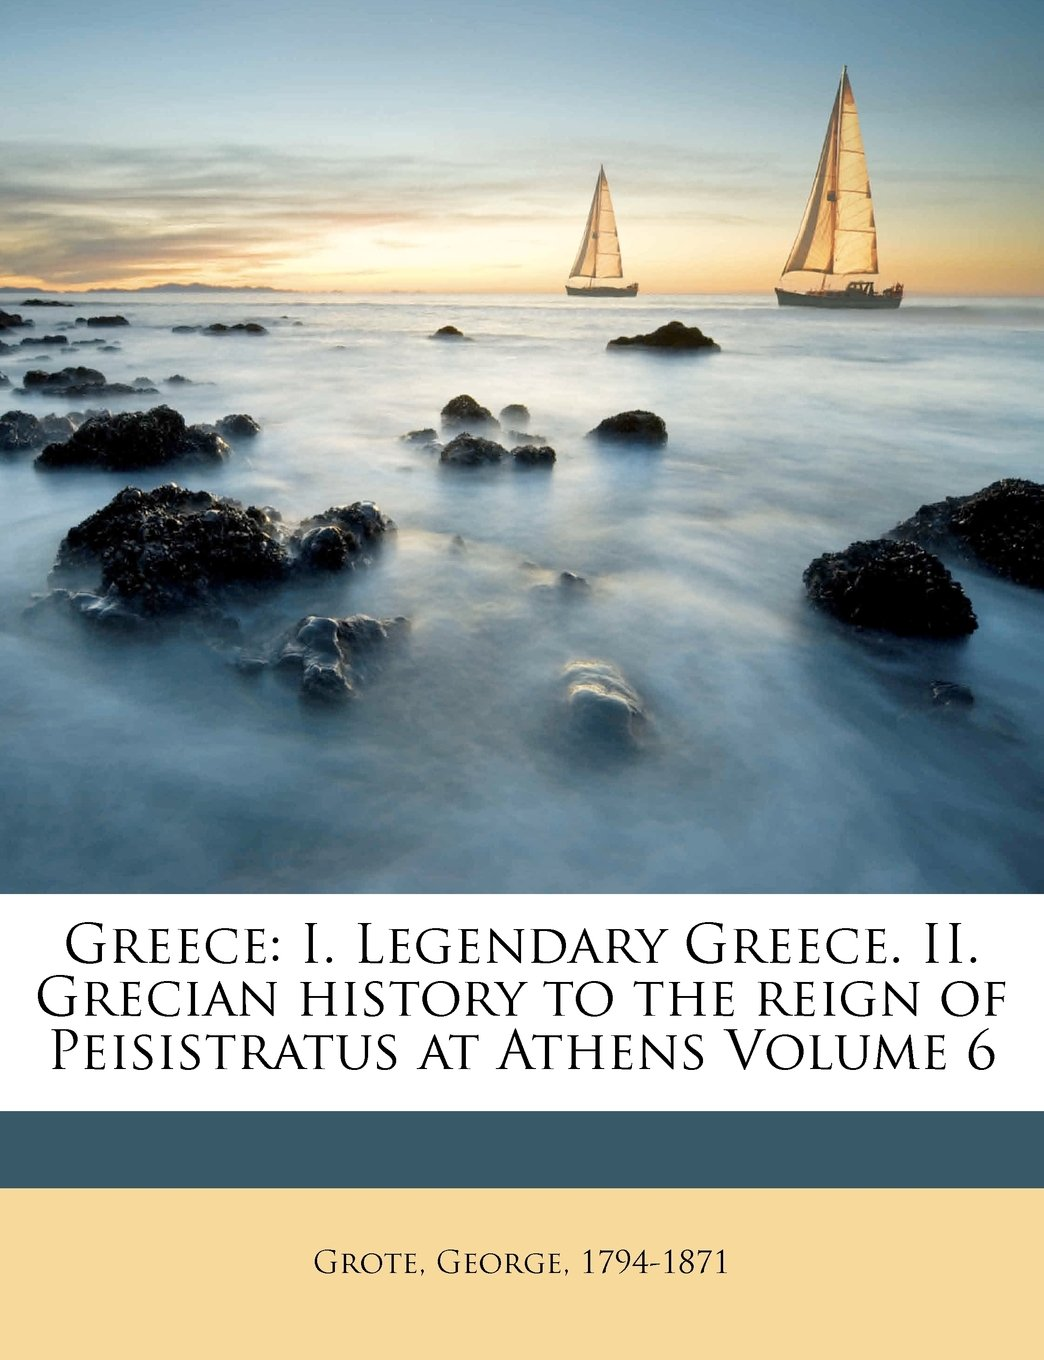 Download Greece: I. Legendary Greece. II. Grecian history to the reign of Peisistratus at Athens Volume 6 ebook